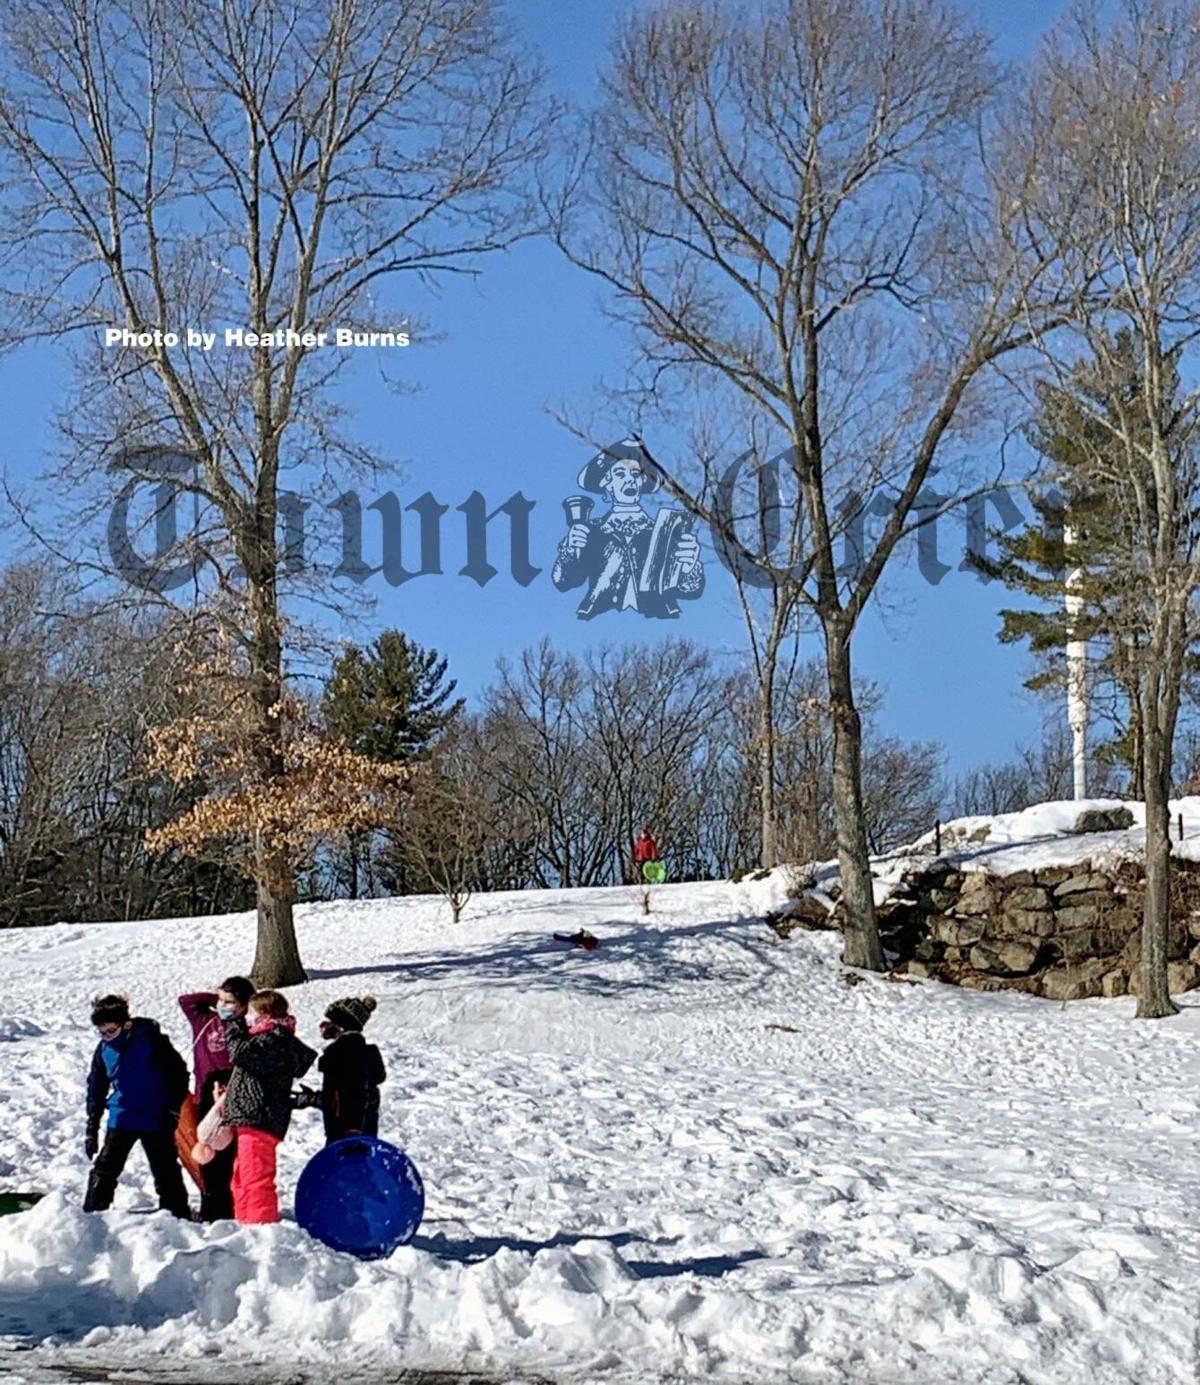 Sledding at Trull Brook Golf Course in Tewksbury